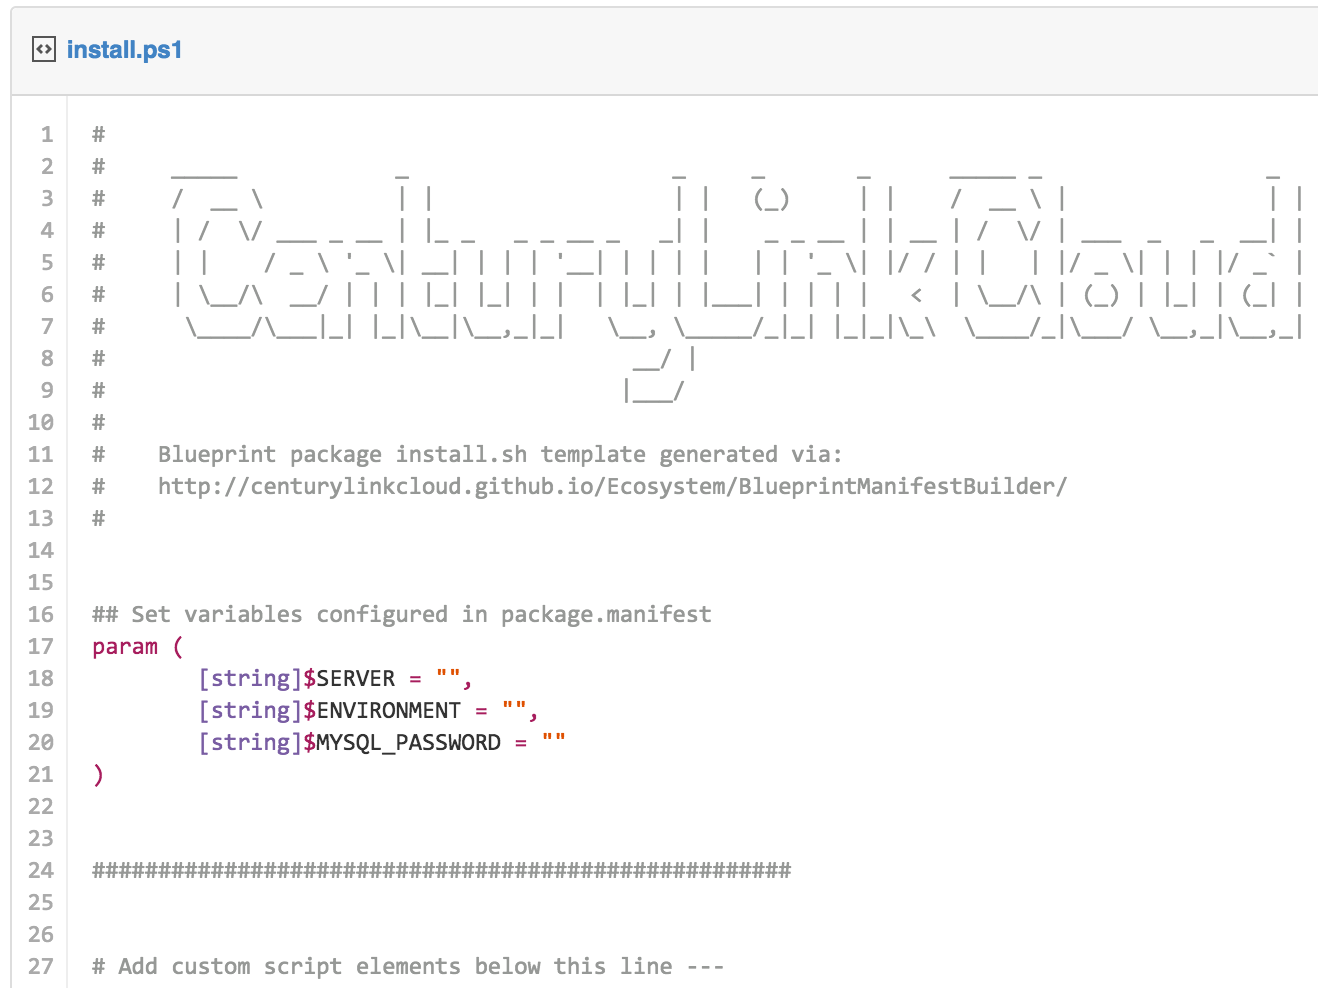 Blueprint package manifest builder wizard centurylink cloud click the export powershell template button to access a powershell shell script template customized to use the parameters defined in your project malvernweather Gallery